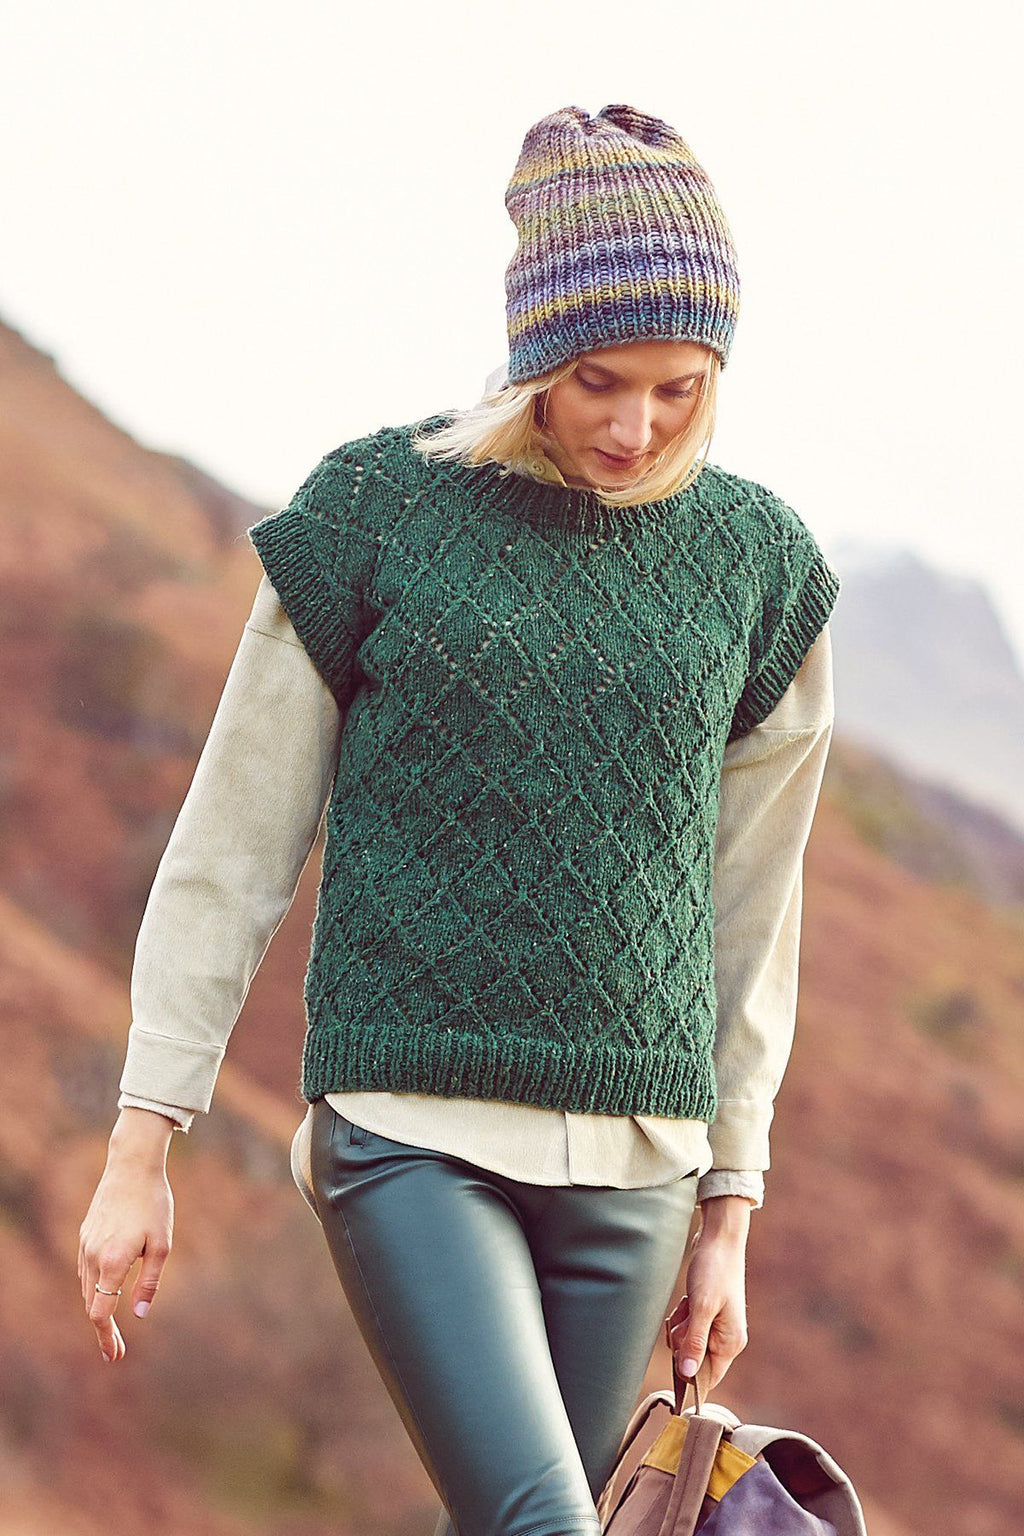 FASHION MODERN TWEED - Sweater, Tank Top, & Cardigan Pattern Rico